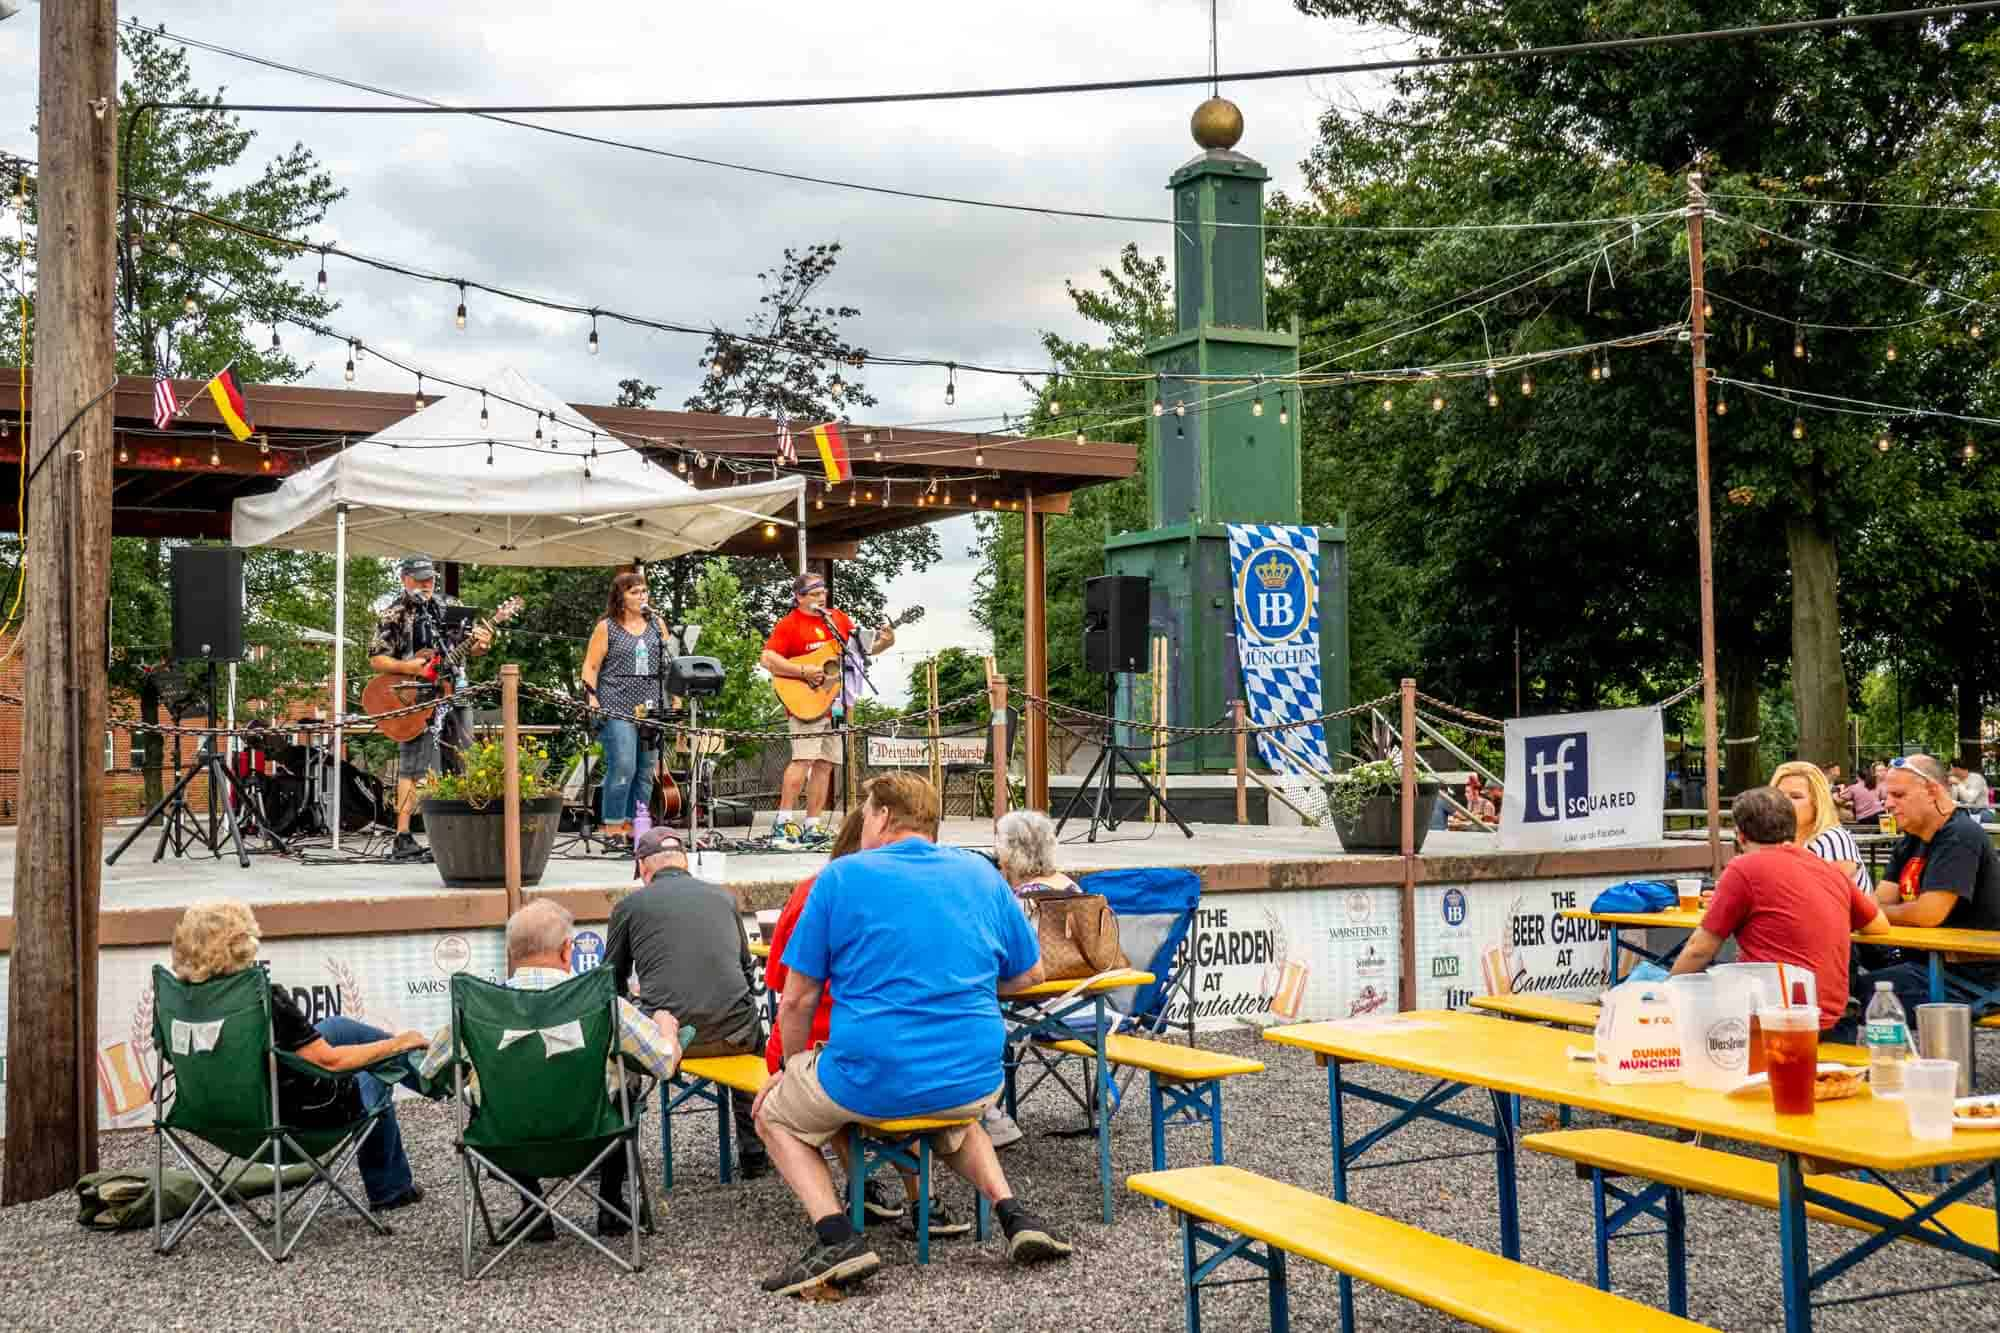 Musicians on a stage in a beer garden